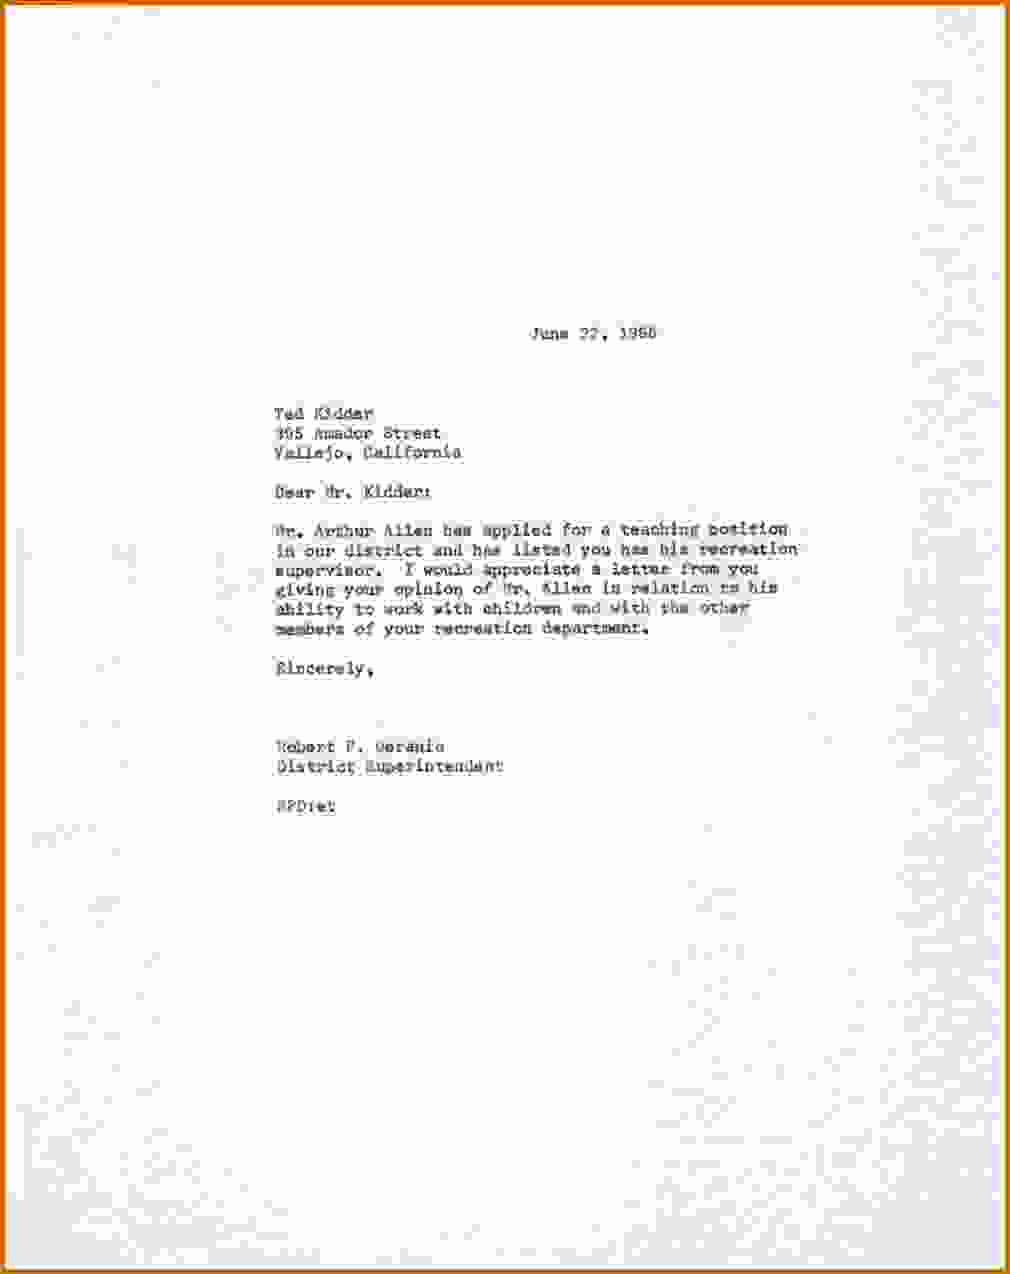 Child Absence From School Letter Beautiful How to Write A Letter to School for Child Absence Choate